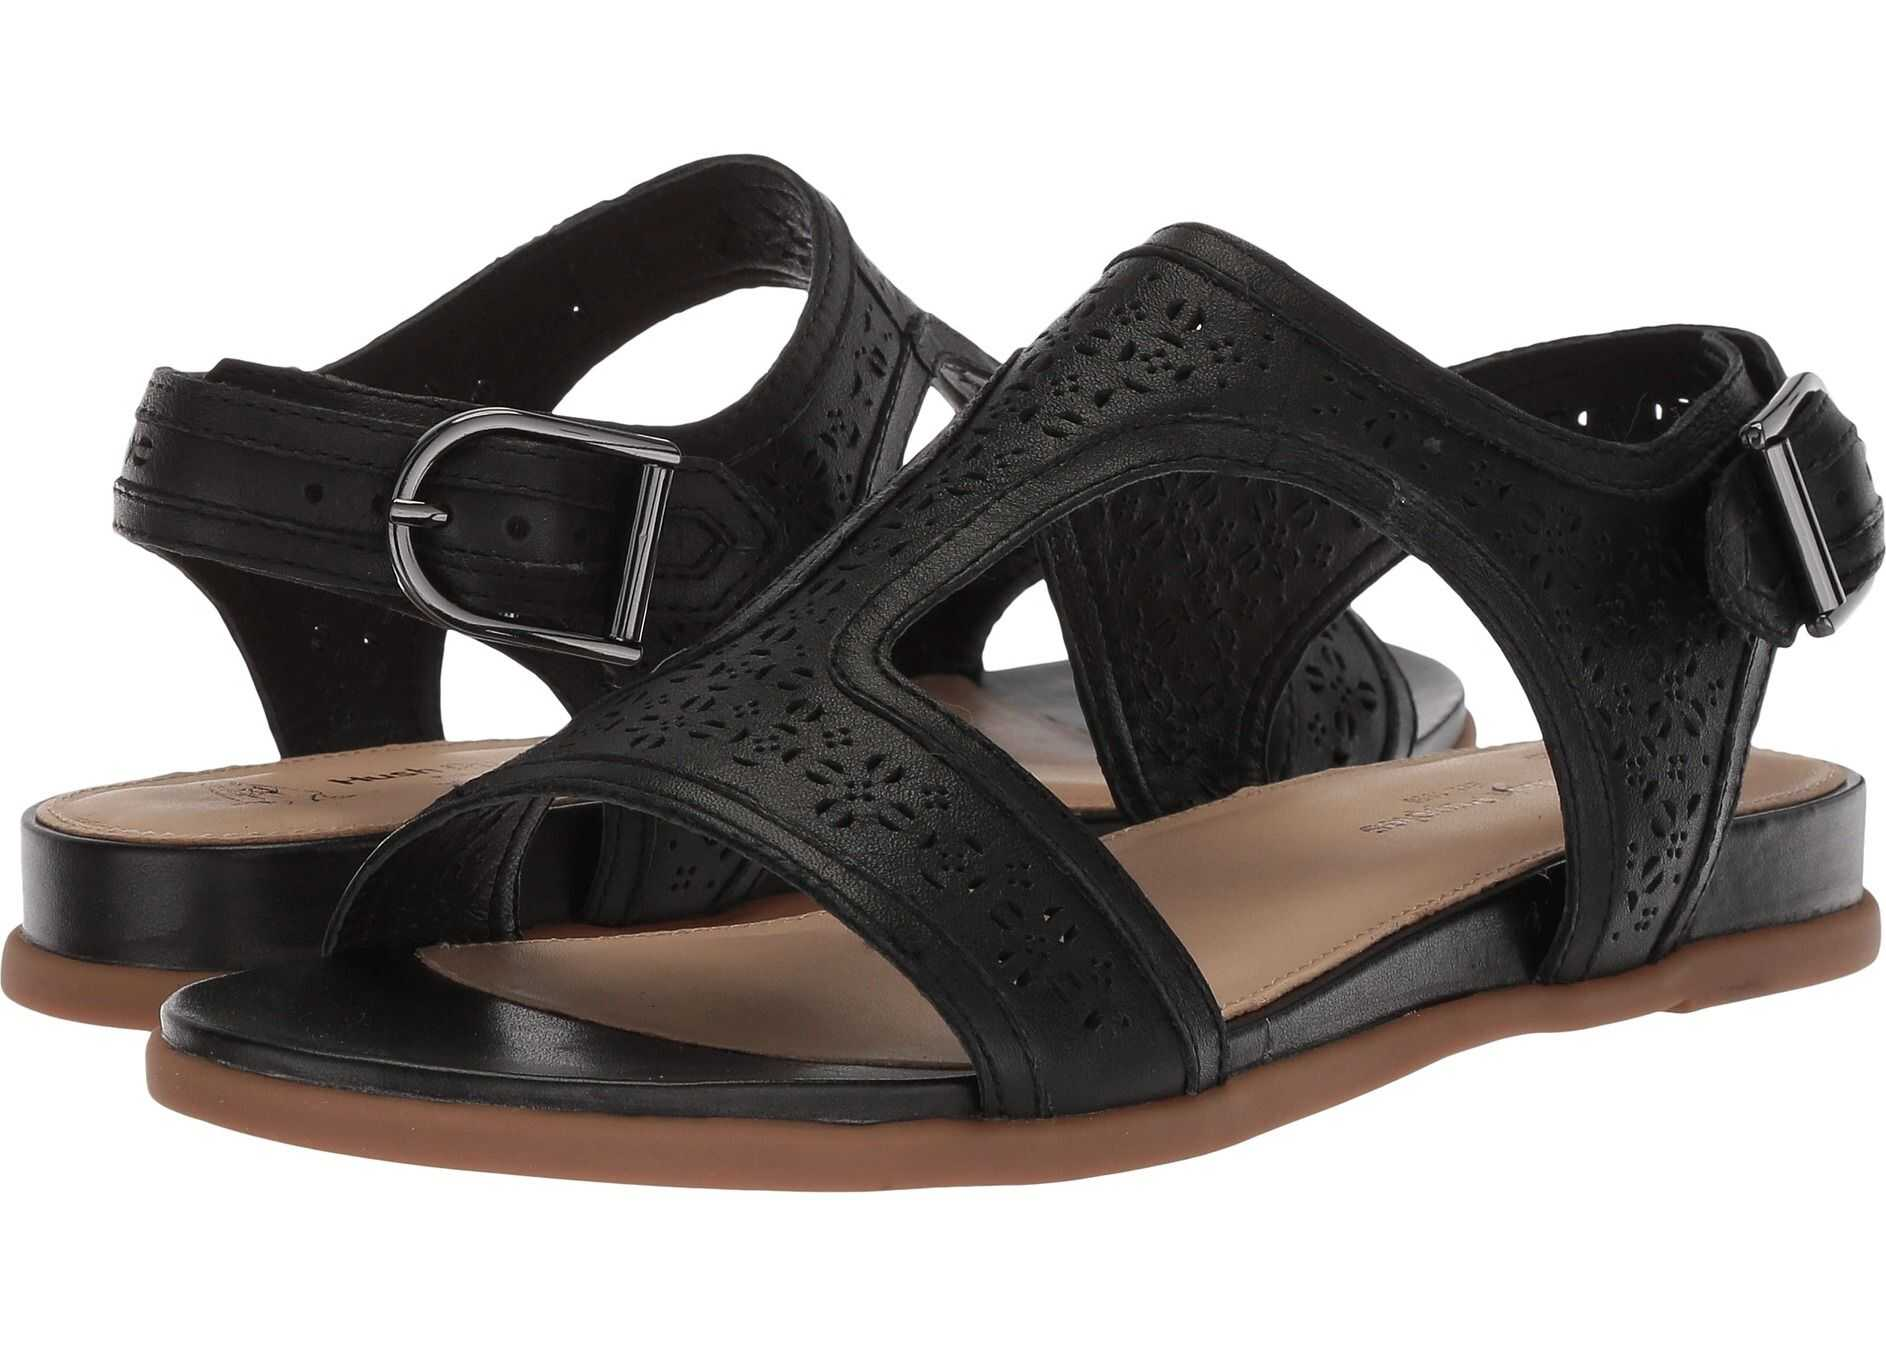 Hush Puppies Dalmatian T-Strap Black Perf Leather